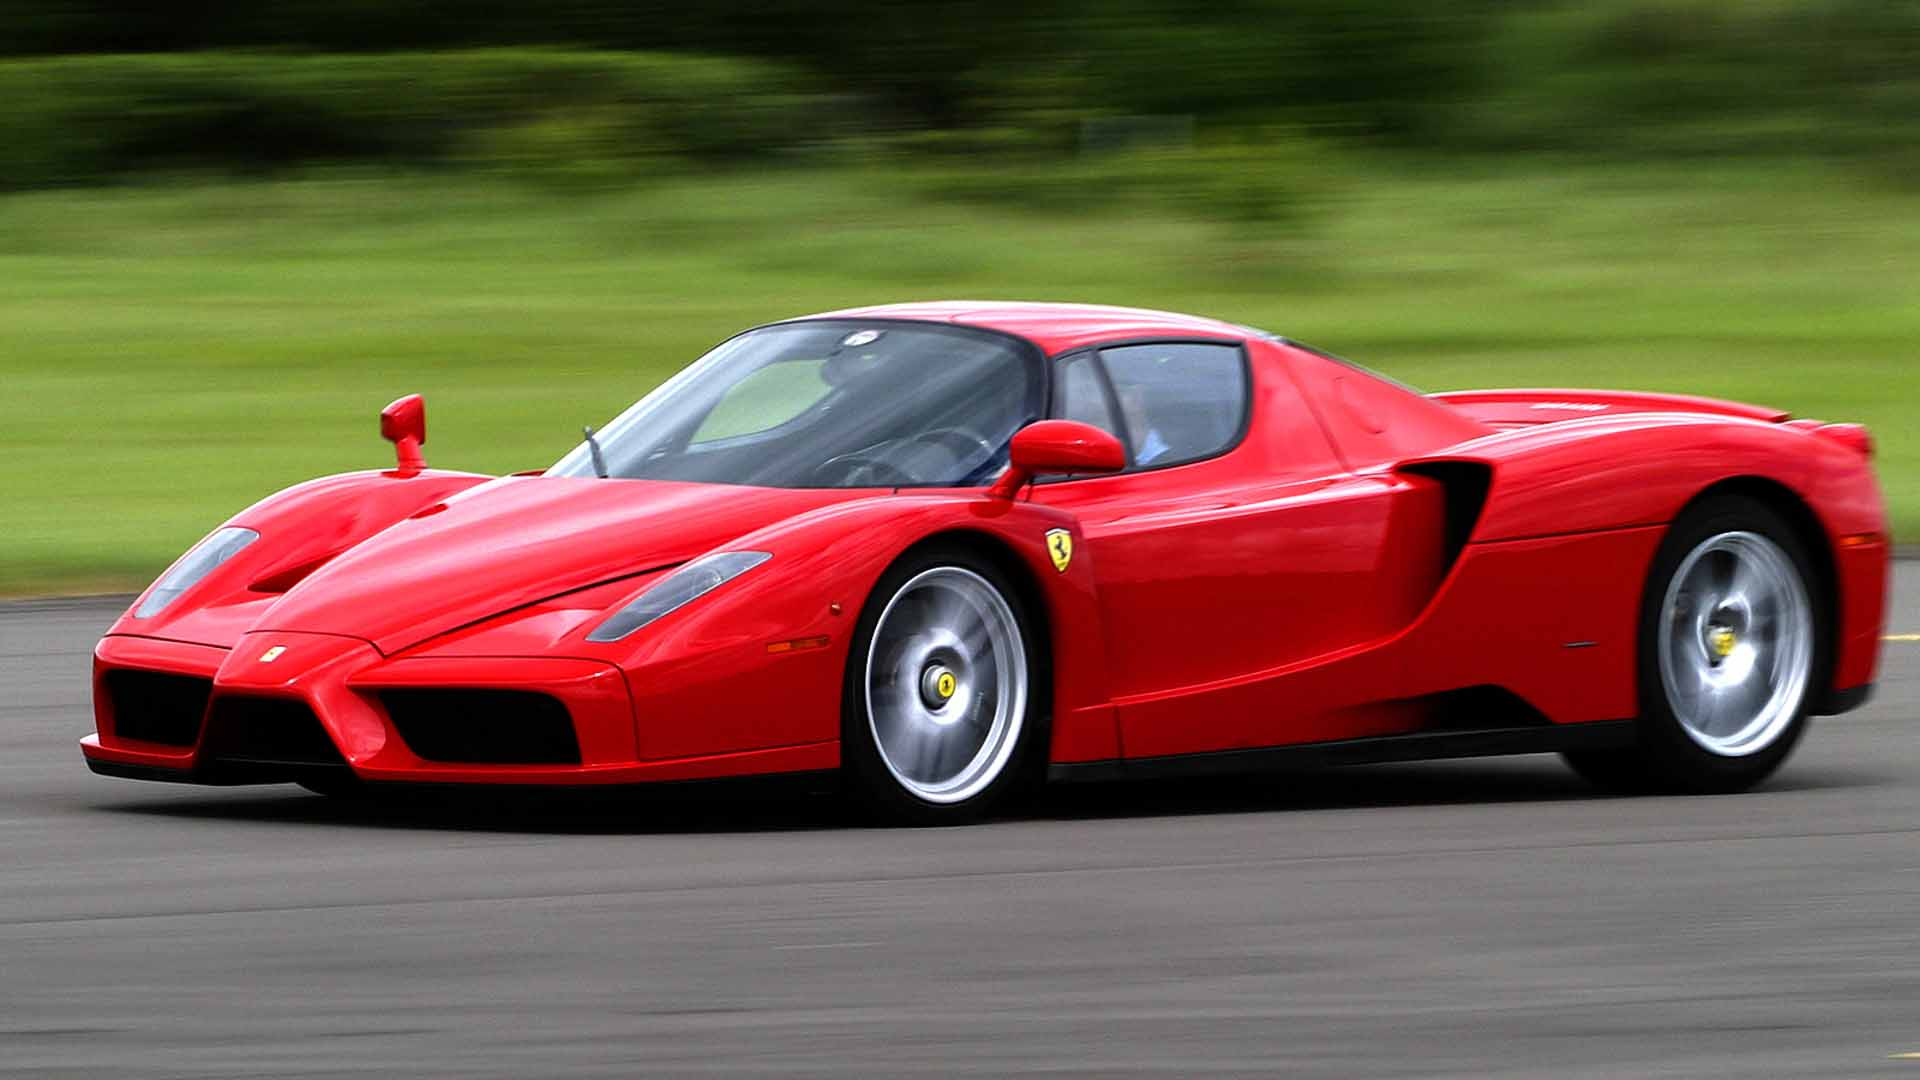 Ferrari wallpapers and high resolution pictures